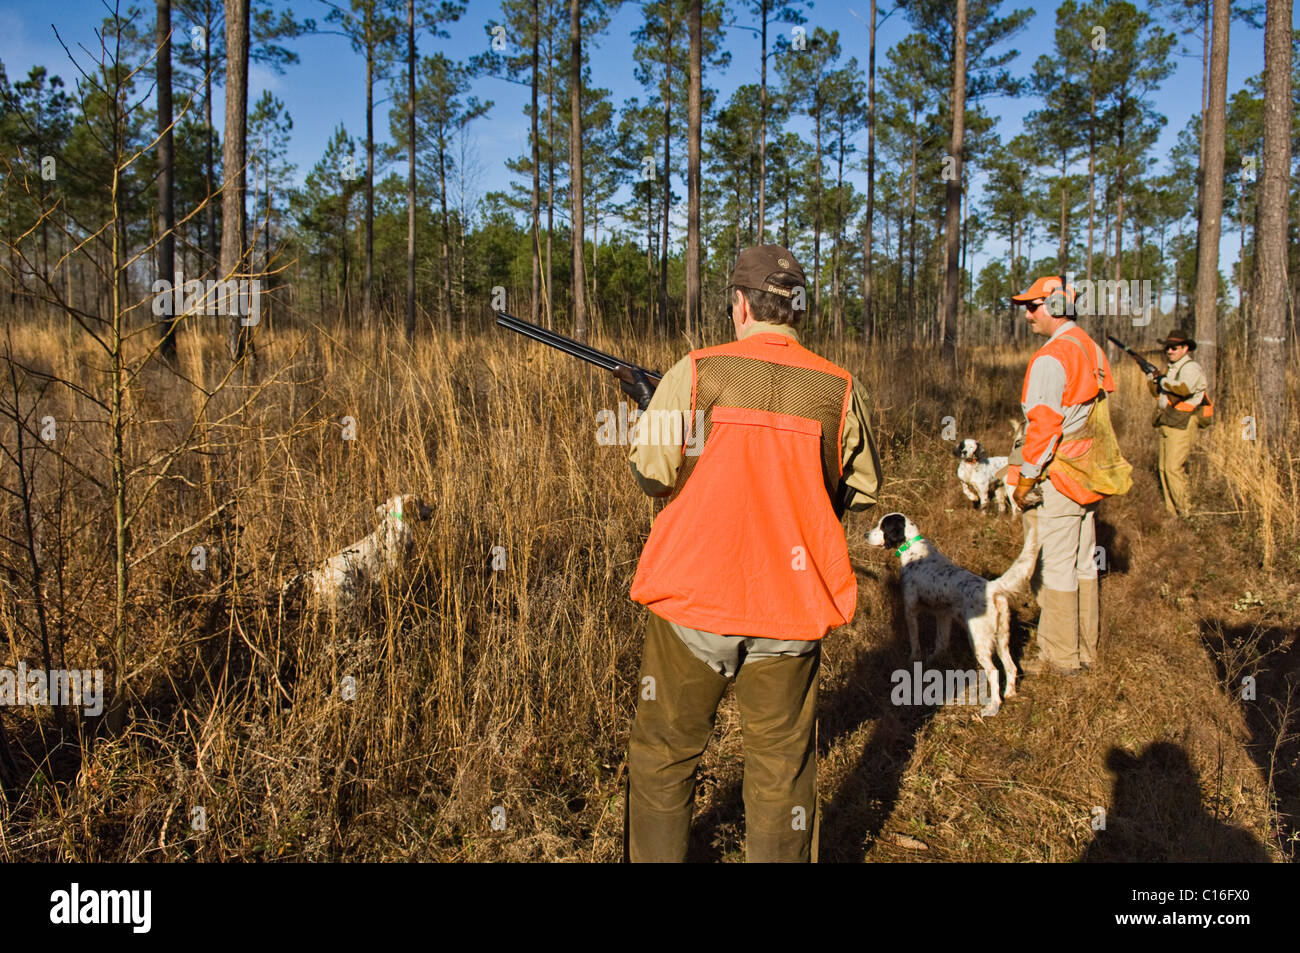 Upland Bird Hunters, Guide, English Cocker Spaniel and English Setters during Bobwhite Quail Hunt in the Piney Woods - Stock Image